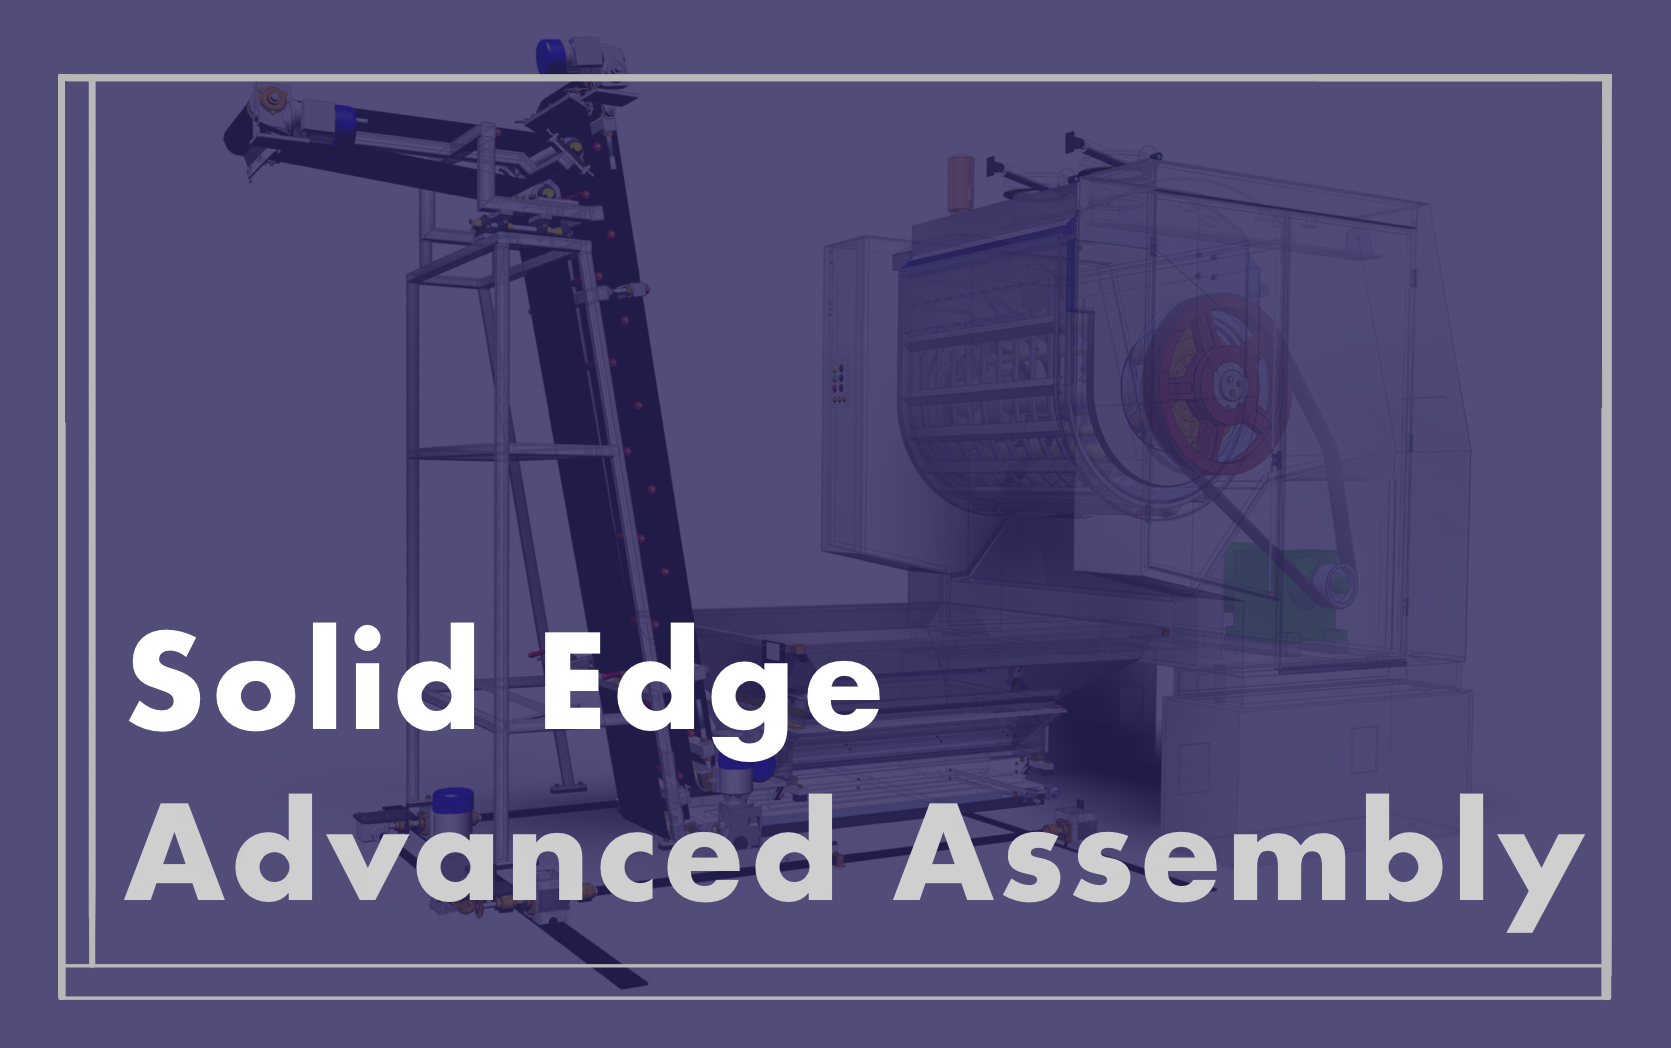 Solid Edge Advanced Assembly